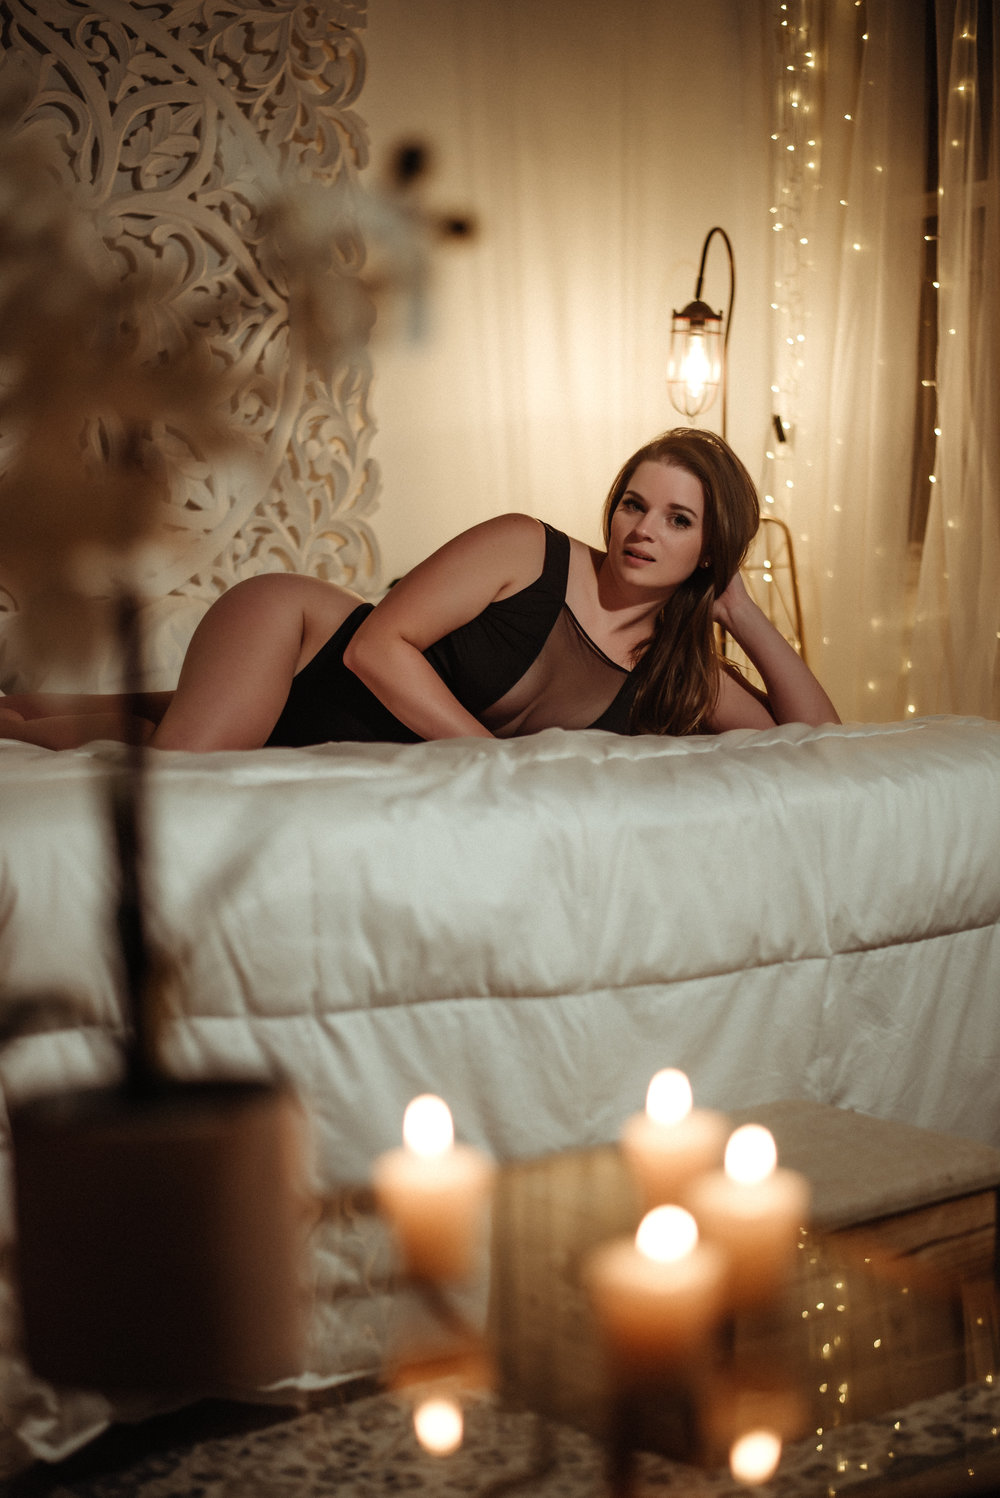 boudoir-photography-best-in-berks-19.jpg